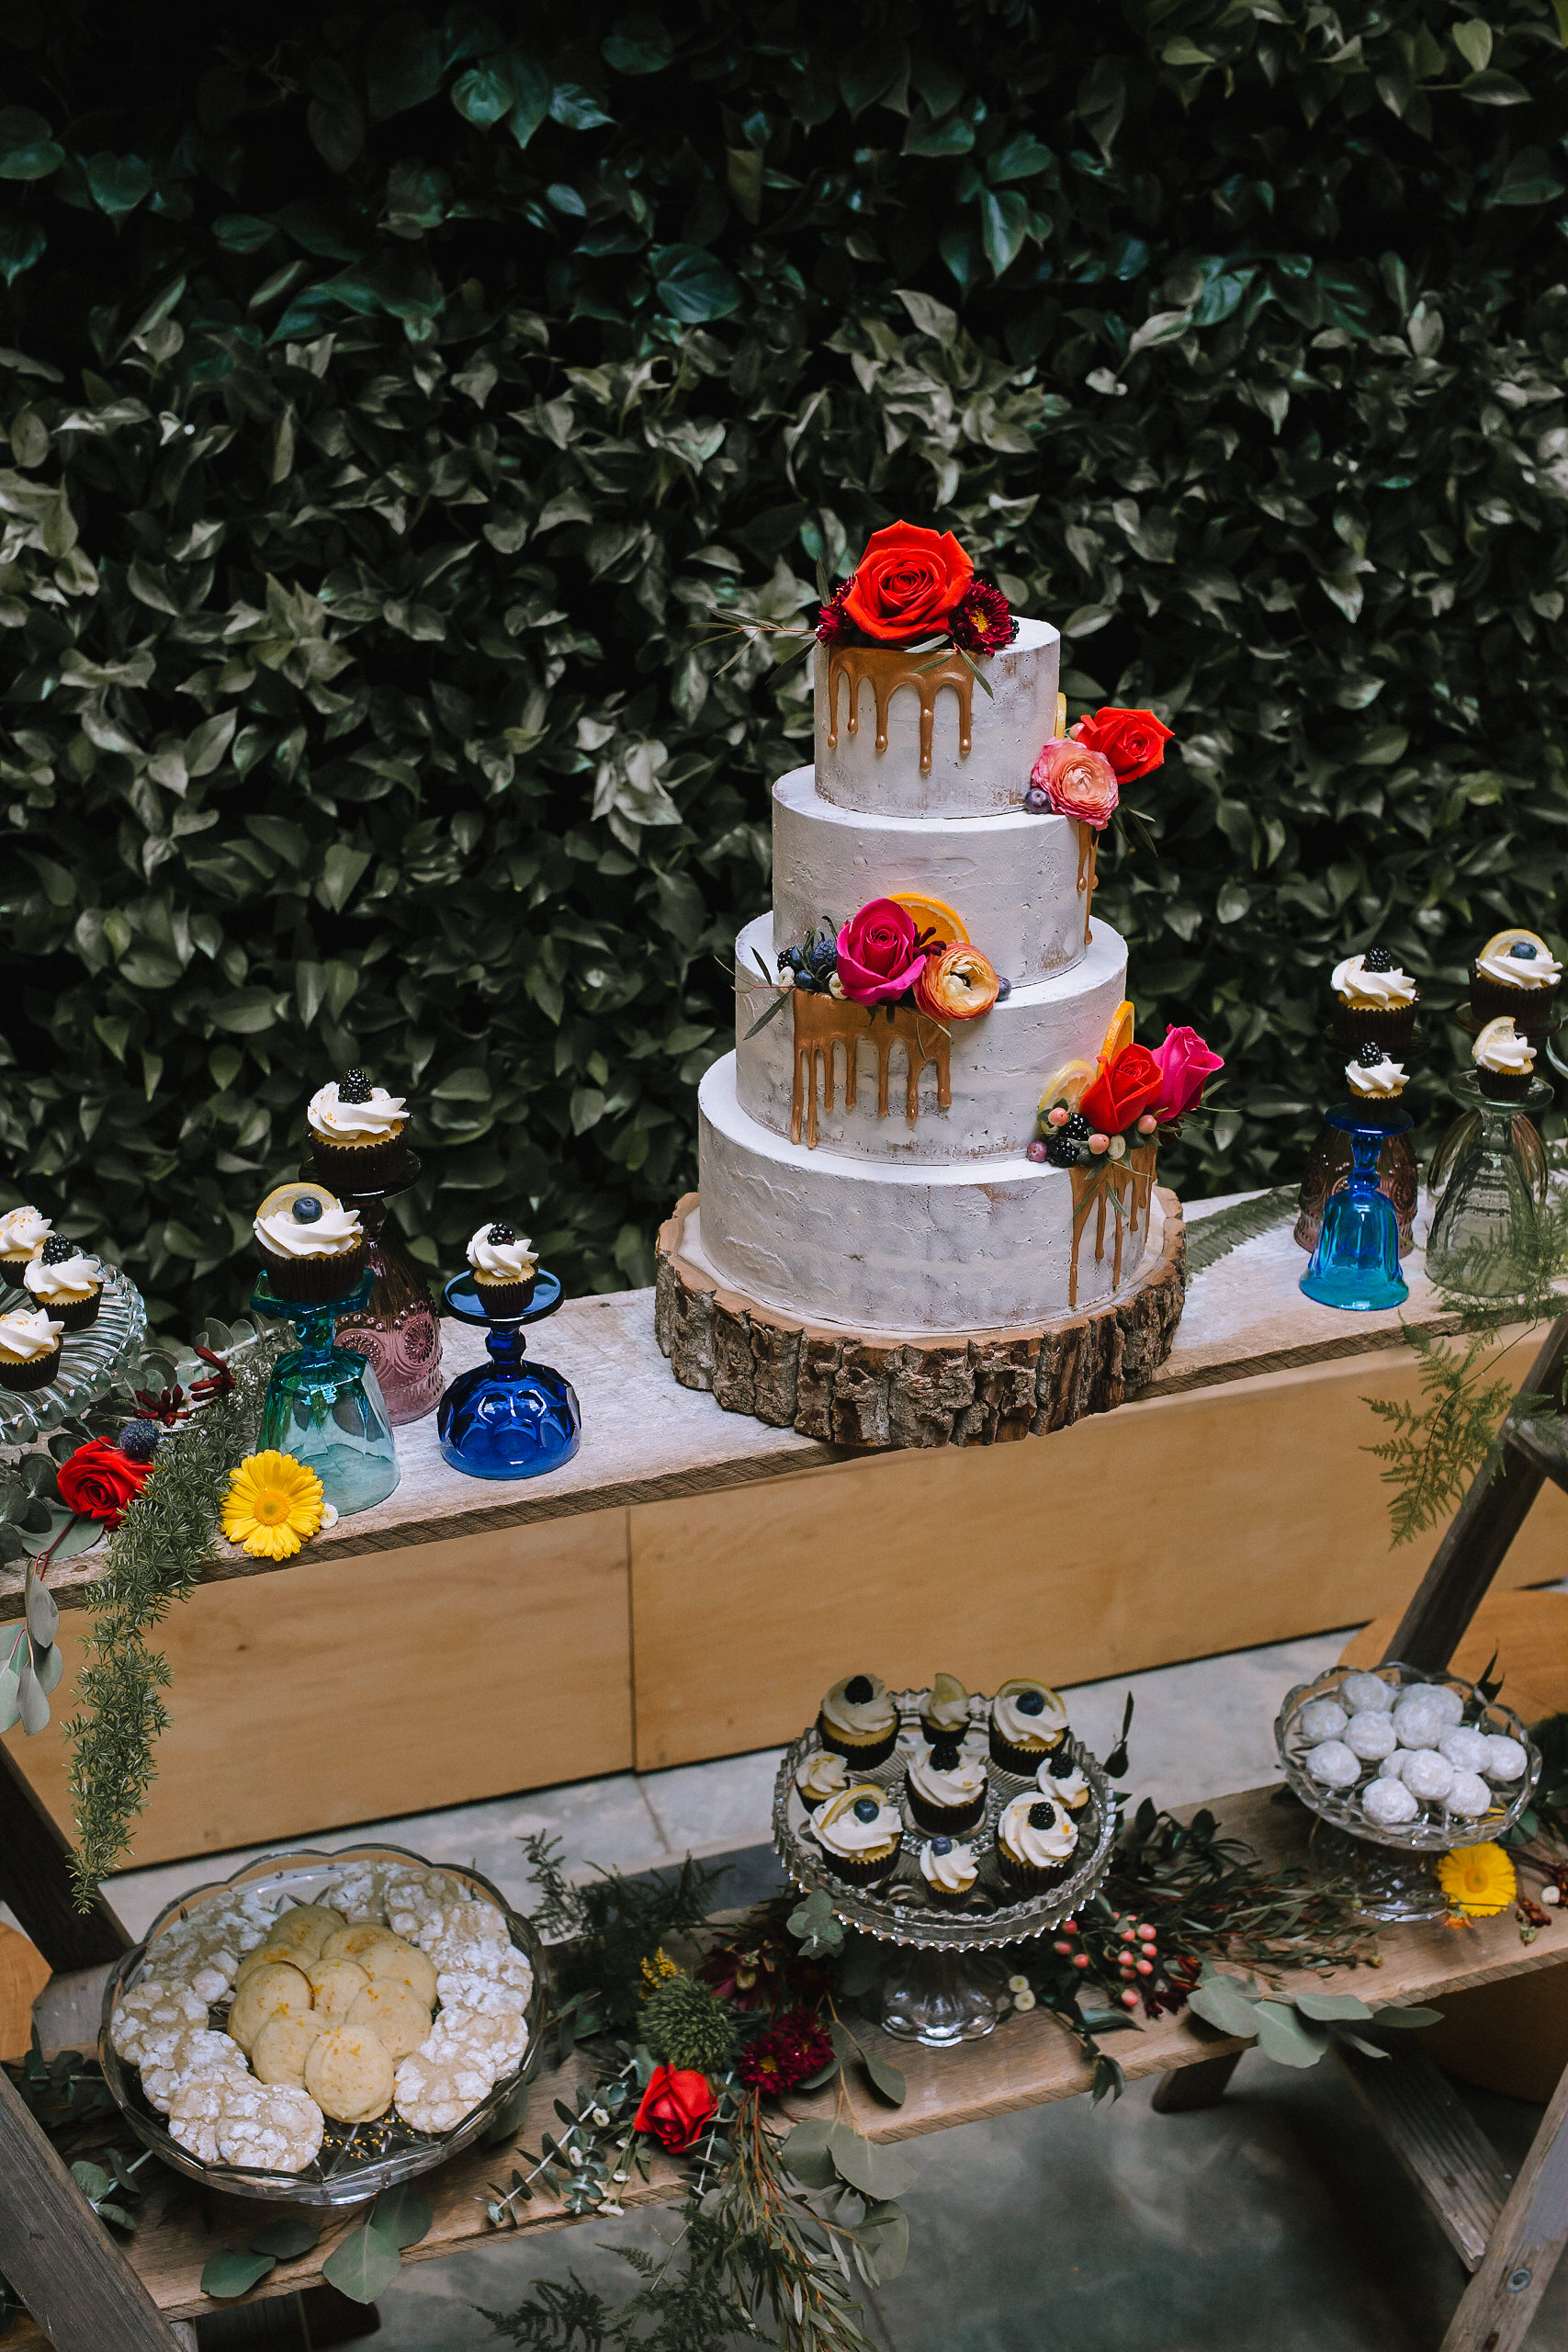 Wedding cake and dessert table inspiration at fall vintage boho styled shoot designed by exhale events. Get inspired by these gorgeous wedding details at exhale-events.com!